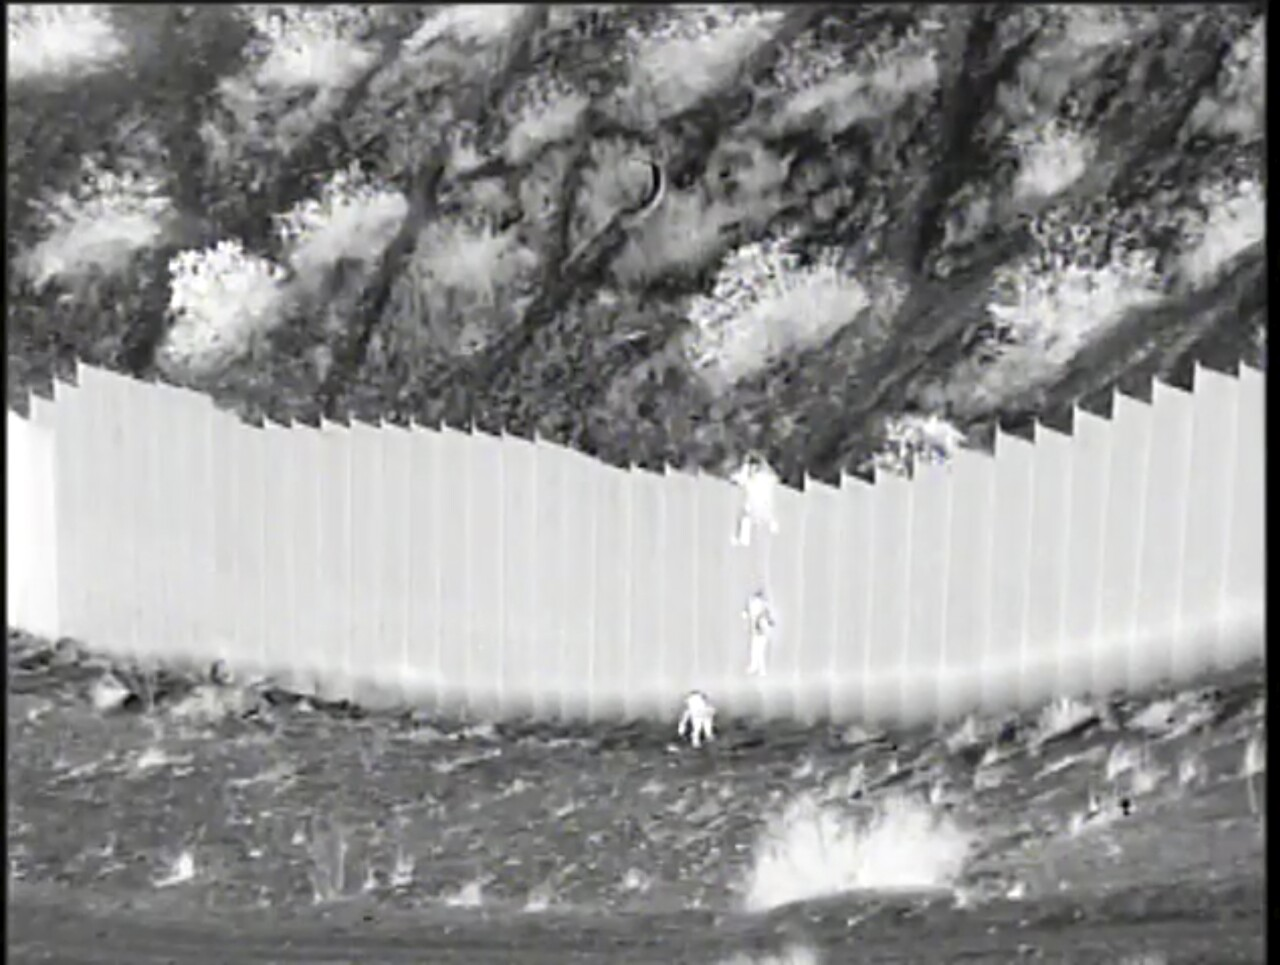 A short, grainy video recently released by U.S. authorities captures the dangers for migrant children at the southern border. Photo via AP.